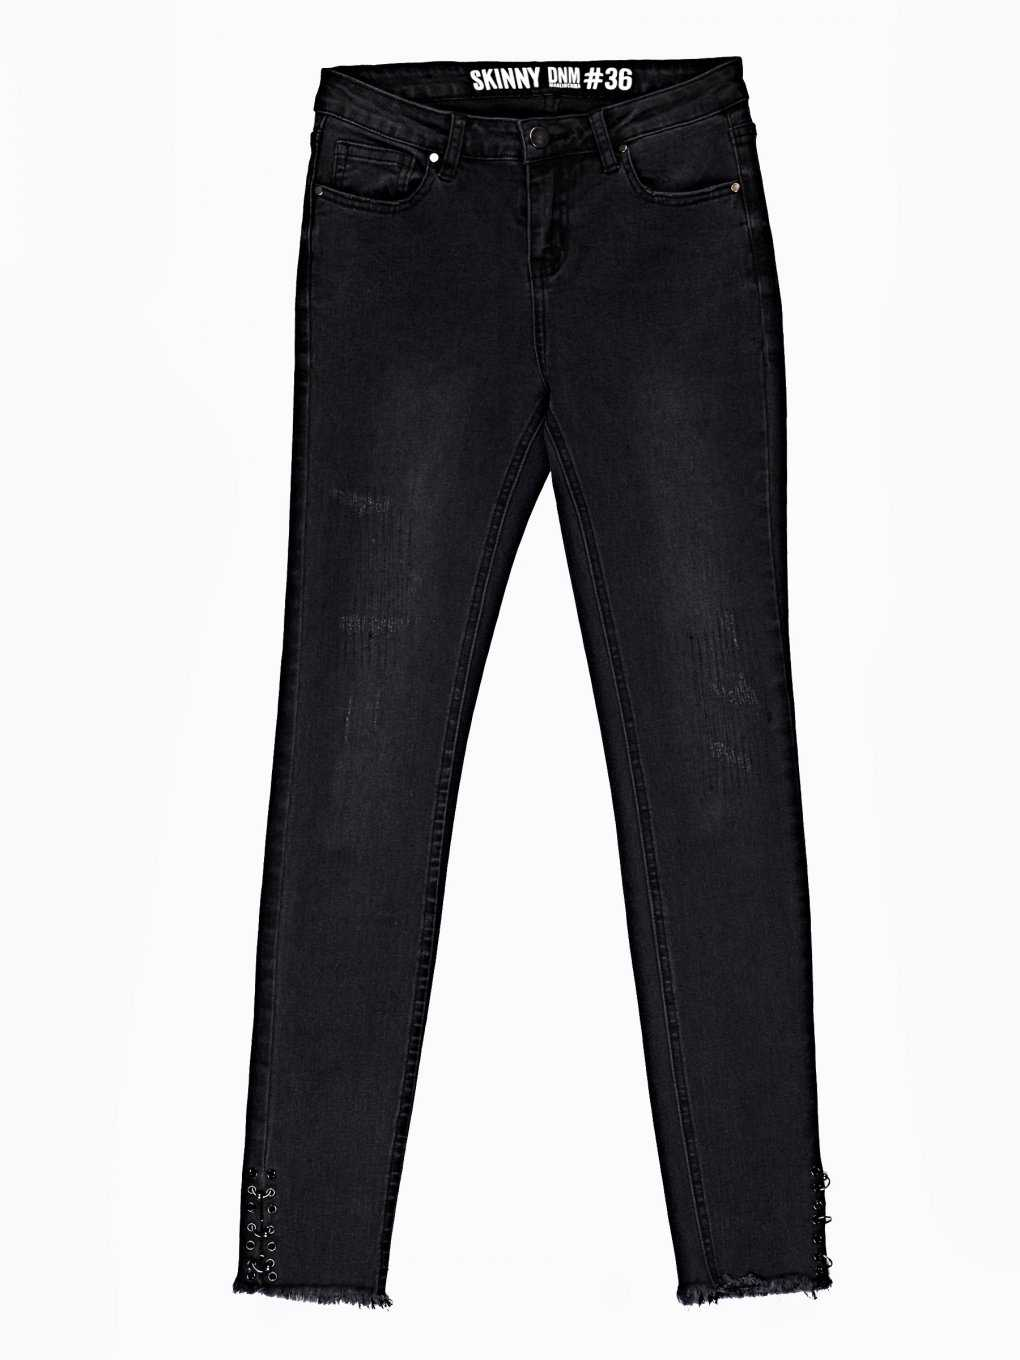 SKINNY JEANS WITH METAL RINGS ON HEM